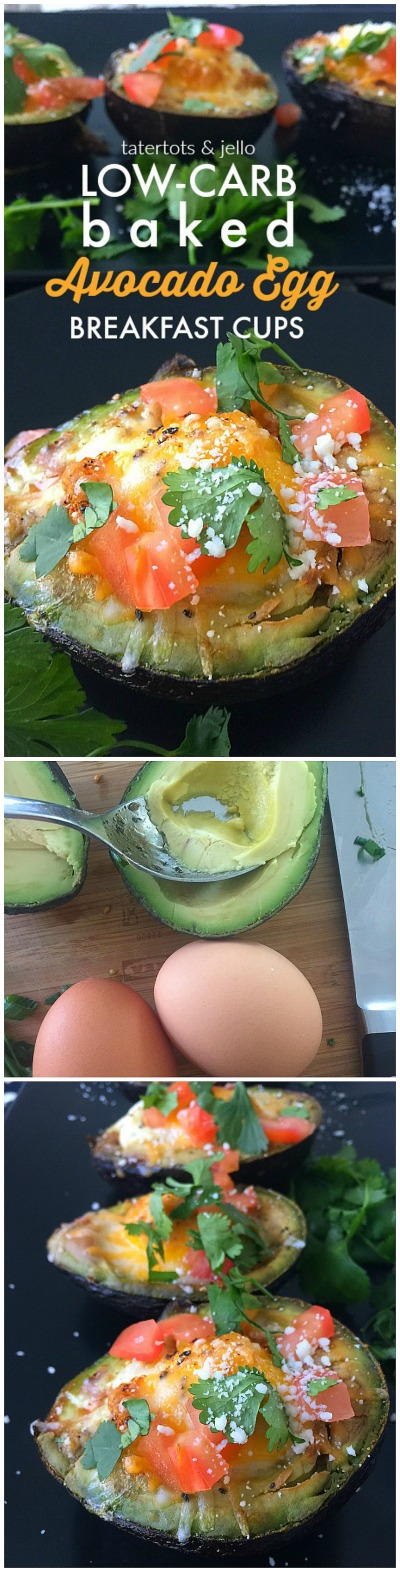 MONDAY, MARCH 27, 2017 Low-Carb Baked Eggs with Avocado and Feta 9.41k 271 32 Low-Carb Baked Eggs with Avocado and Feta are a delicious quick breakfast option that's also Keto, low-glycemic, gluten-free, and South Beach Diet friendly!